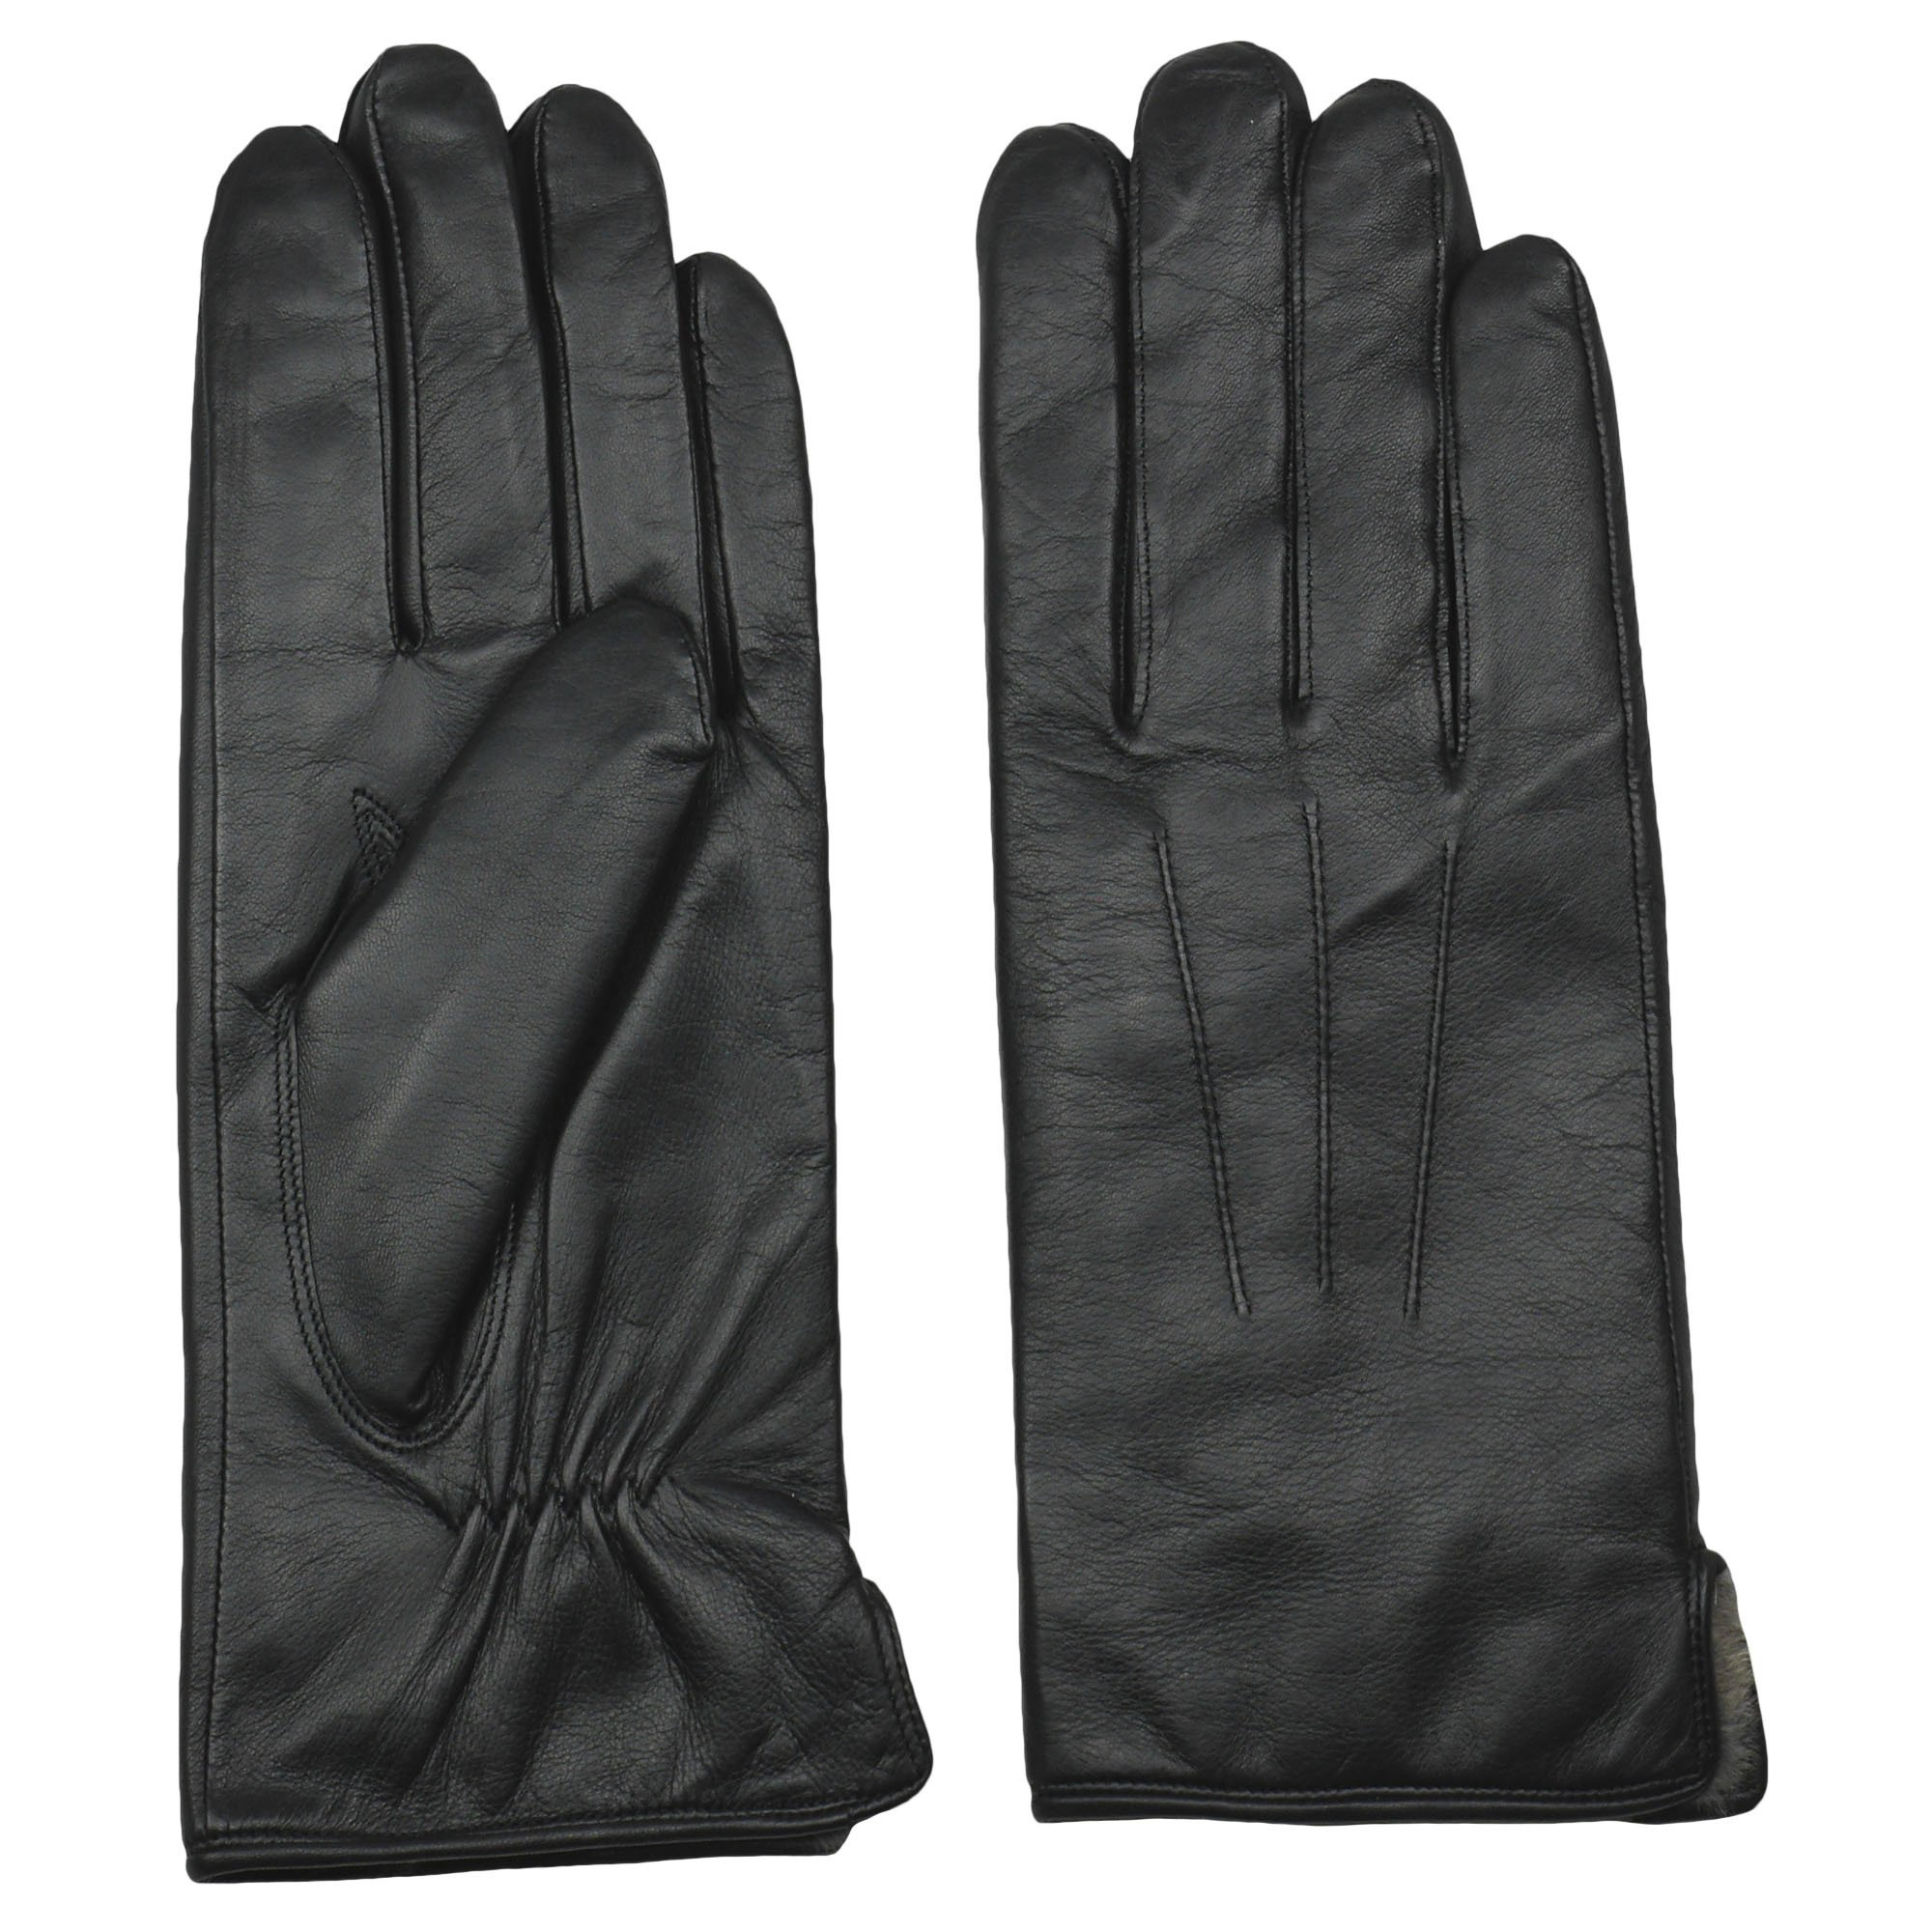 Men's Rabbit Fur Lined Sheepskin Leather Gloves by Arosa | Butter Soft Luxurious by AROSA (Image #2)